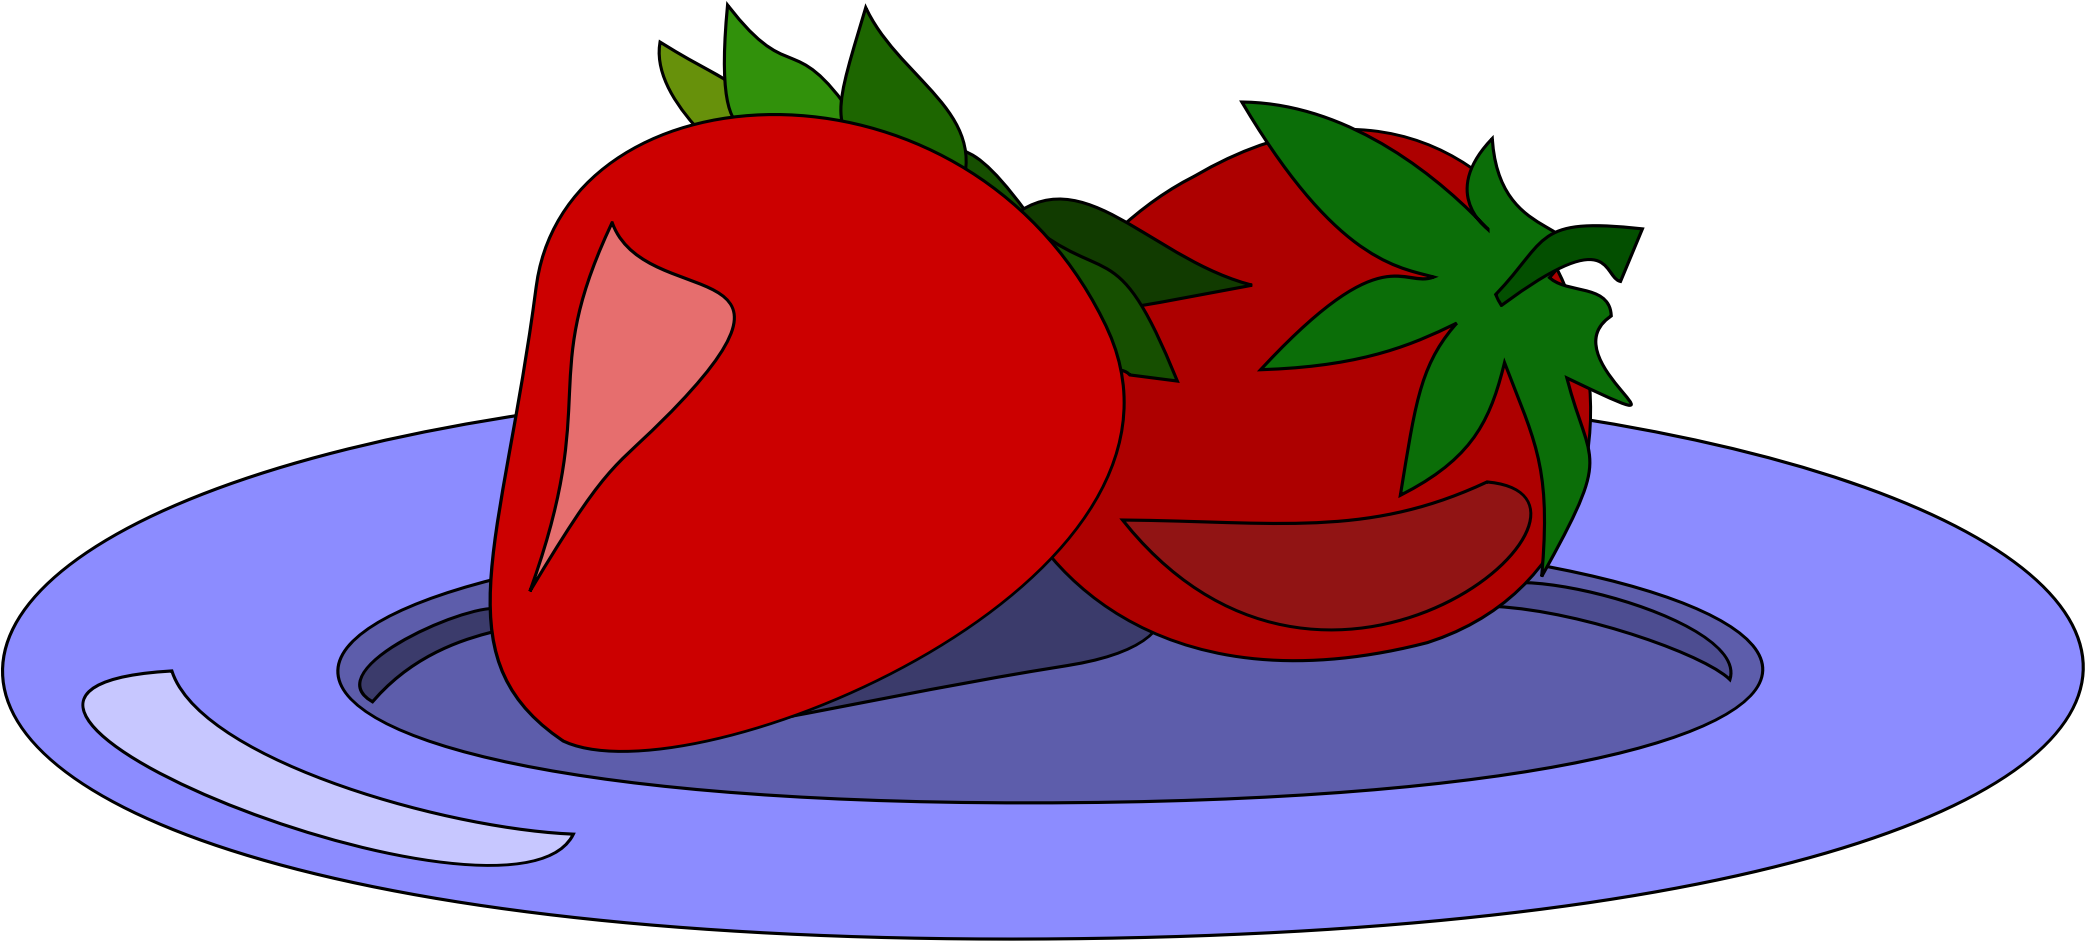 On a plate big. Strawberries clipart cartoon